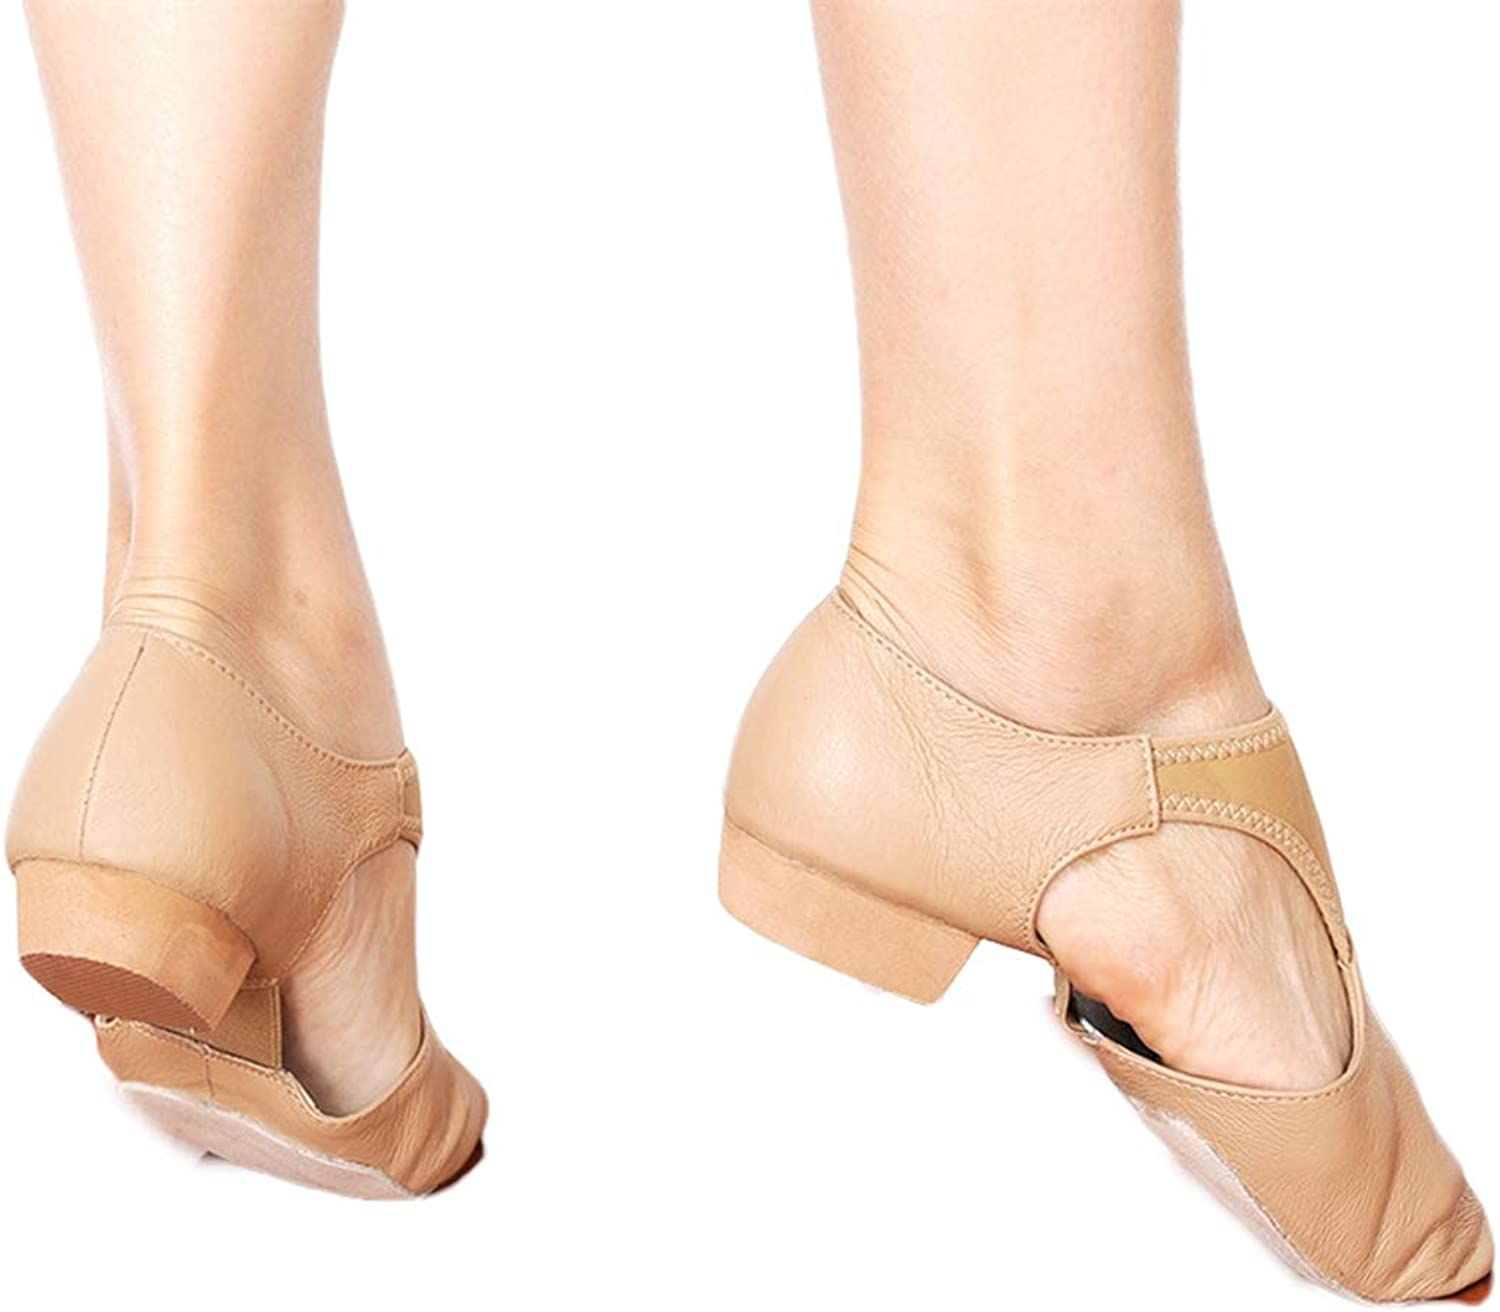 Kyle Walsh Pa Women Leather Stretch Jazz Dance shoes for Women Ballet Jazzy Dancing shoes Teachers's Dance Sandals Excercise shoes